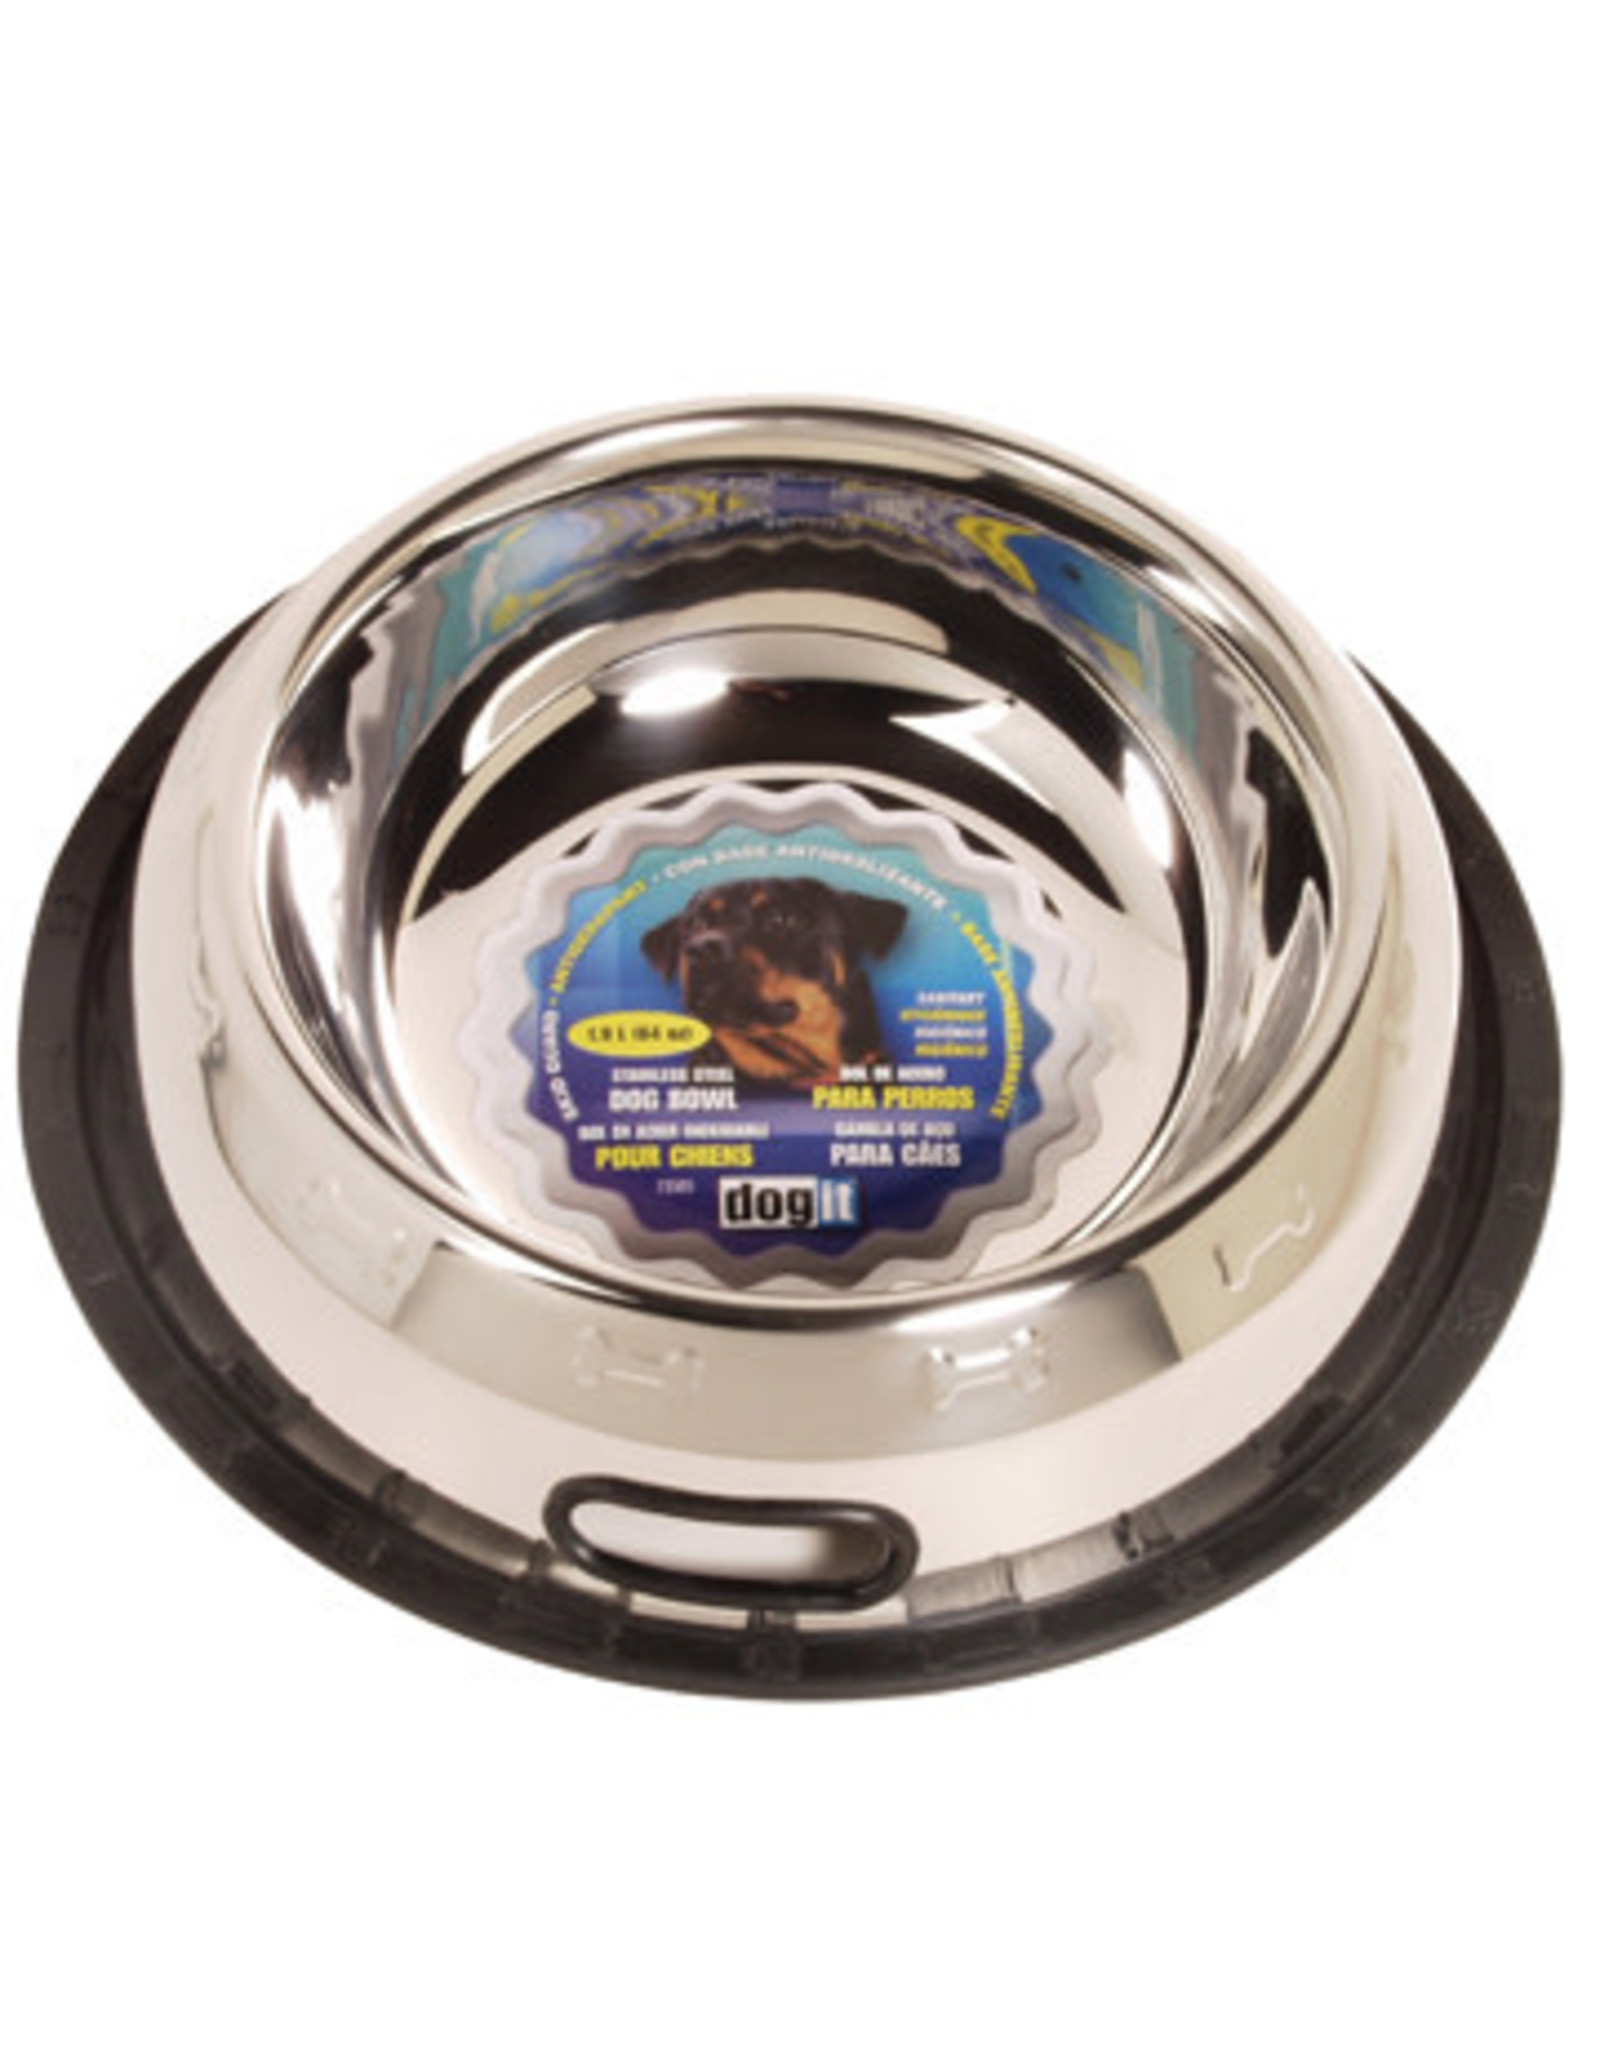 DogIt Stainless Steel Non Spill Dog Dish XL 1.9L